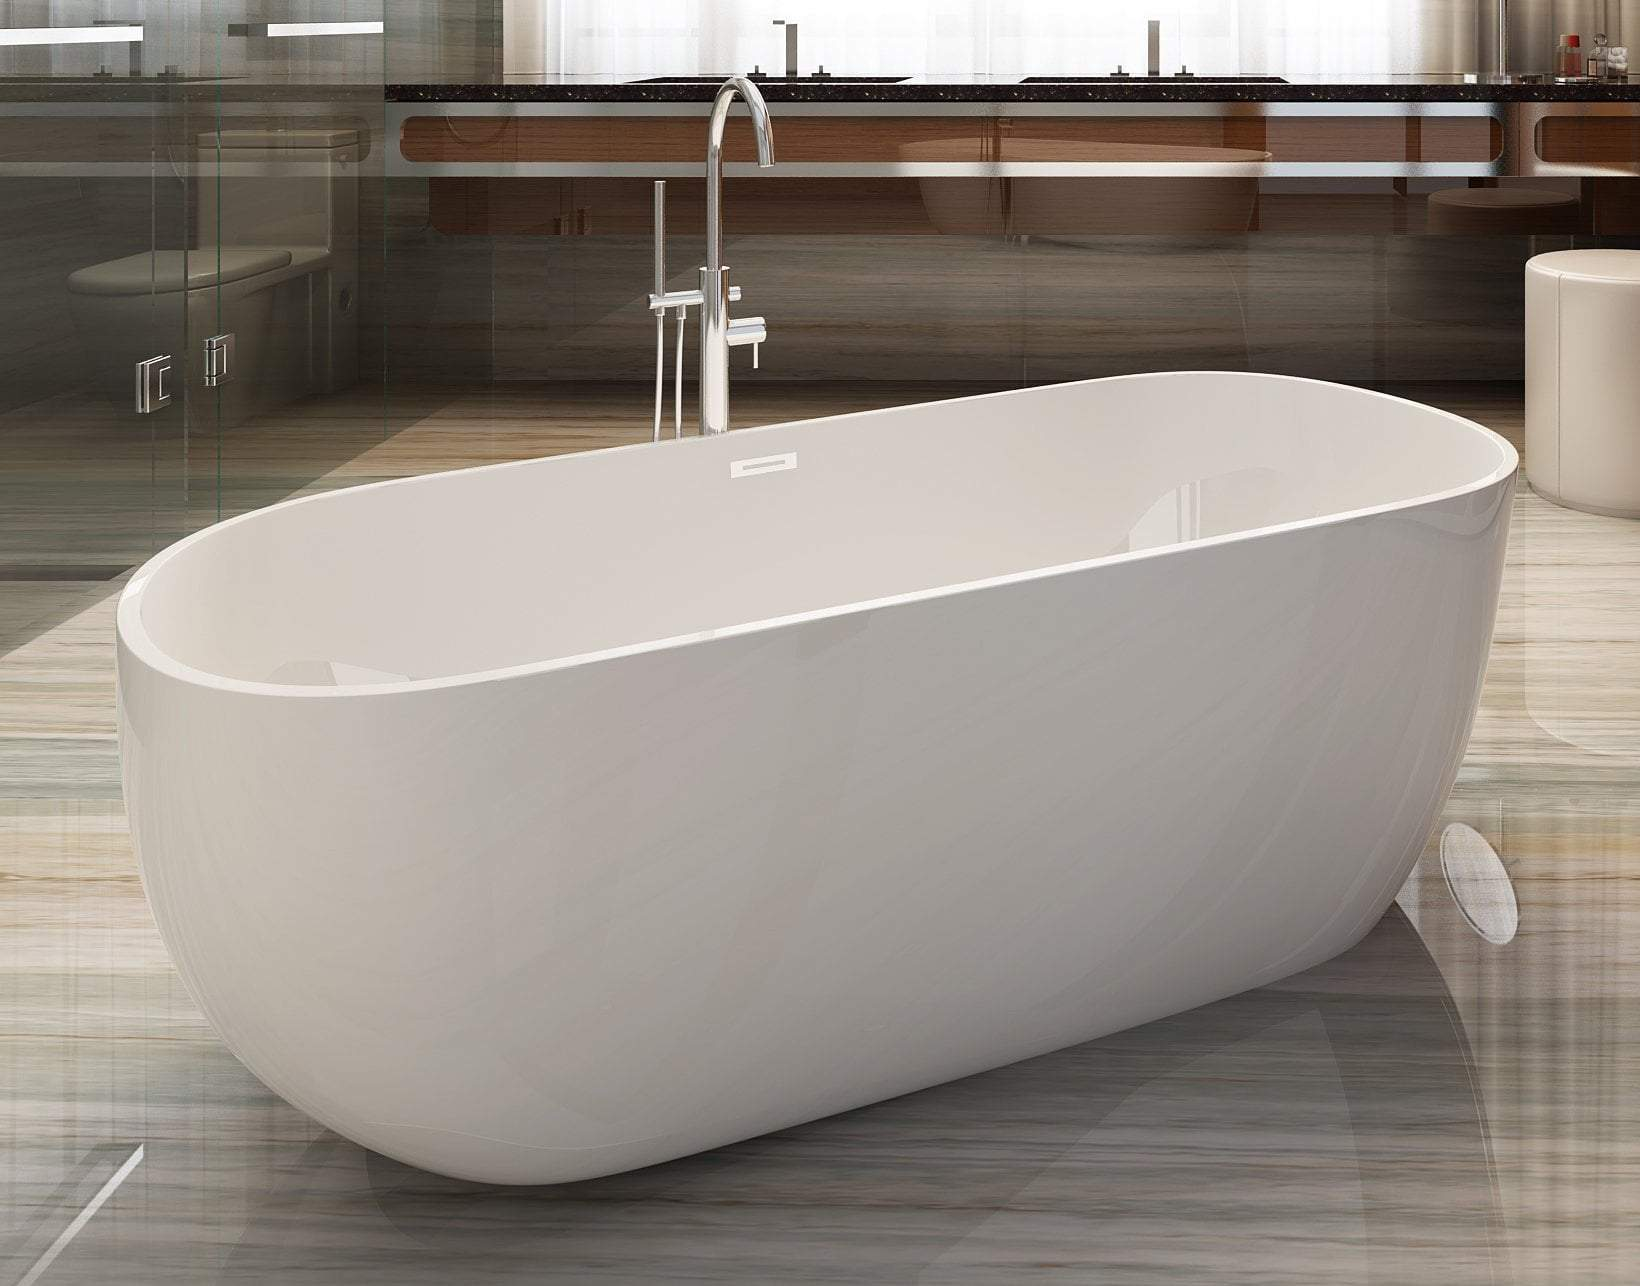 59 inch White Oval Acrylic Free Standing Soaking Bathtub